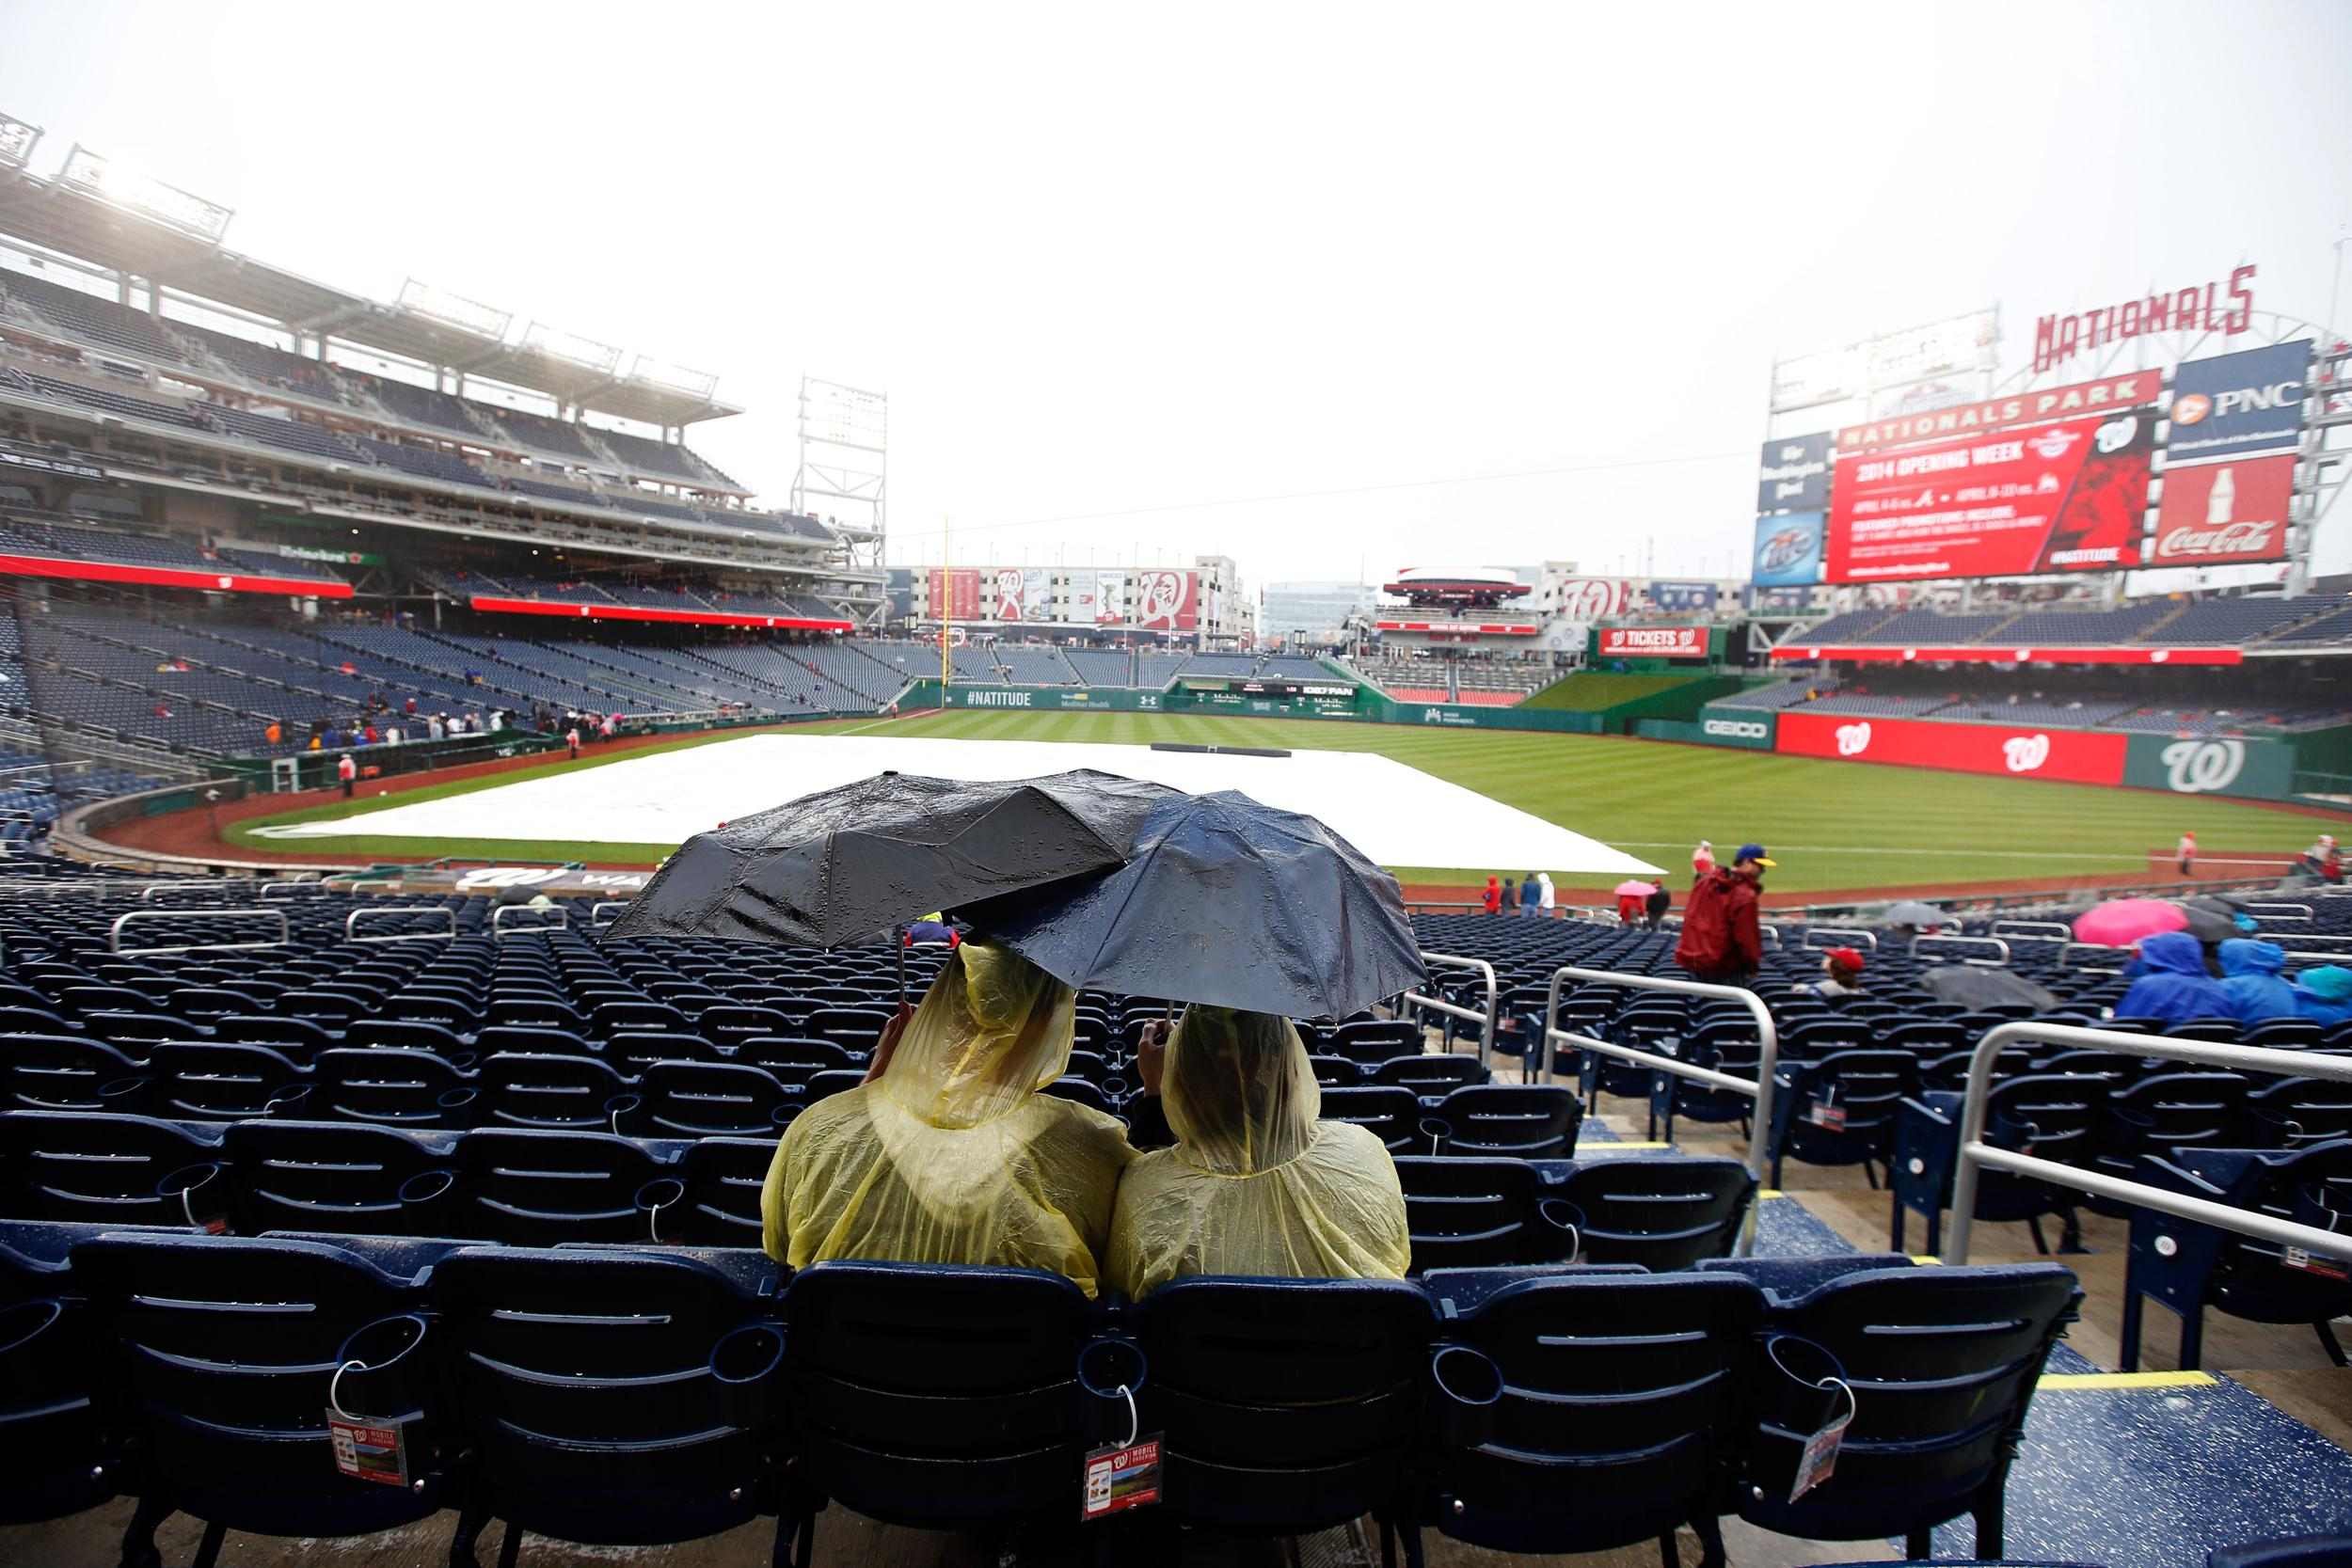 Image: Fans sit under umbrellas in the rain before an exhibition baseball game between the Washington Nationals and the Detroit Tigers at Nationals Park Saturday